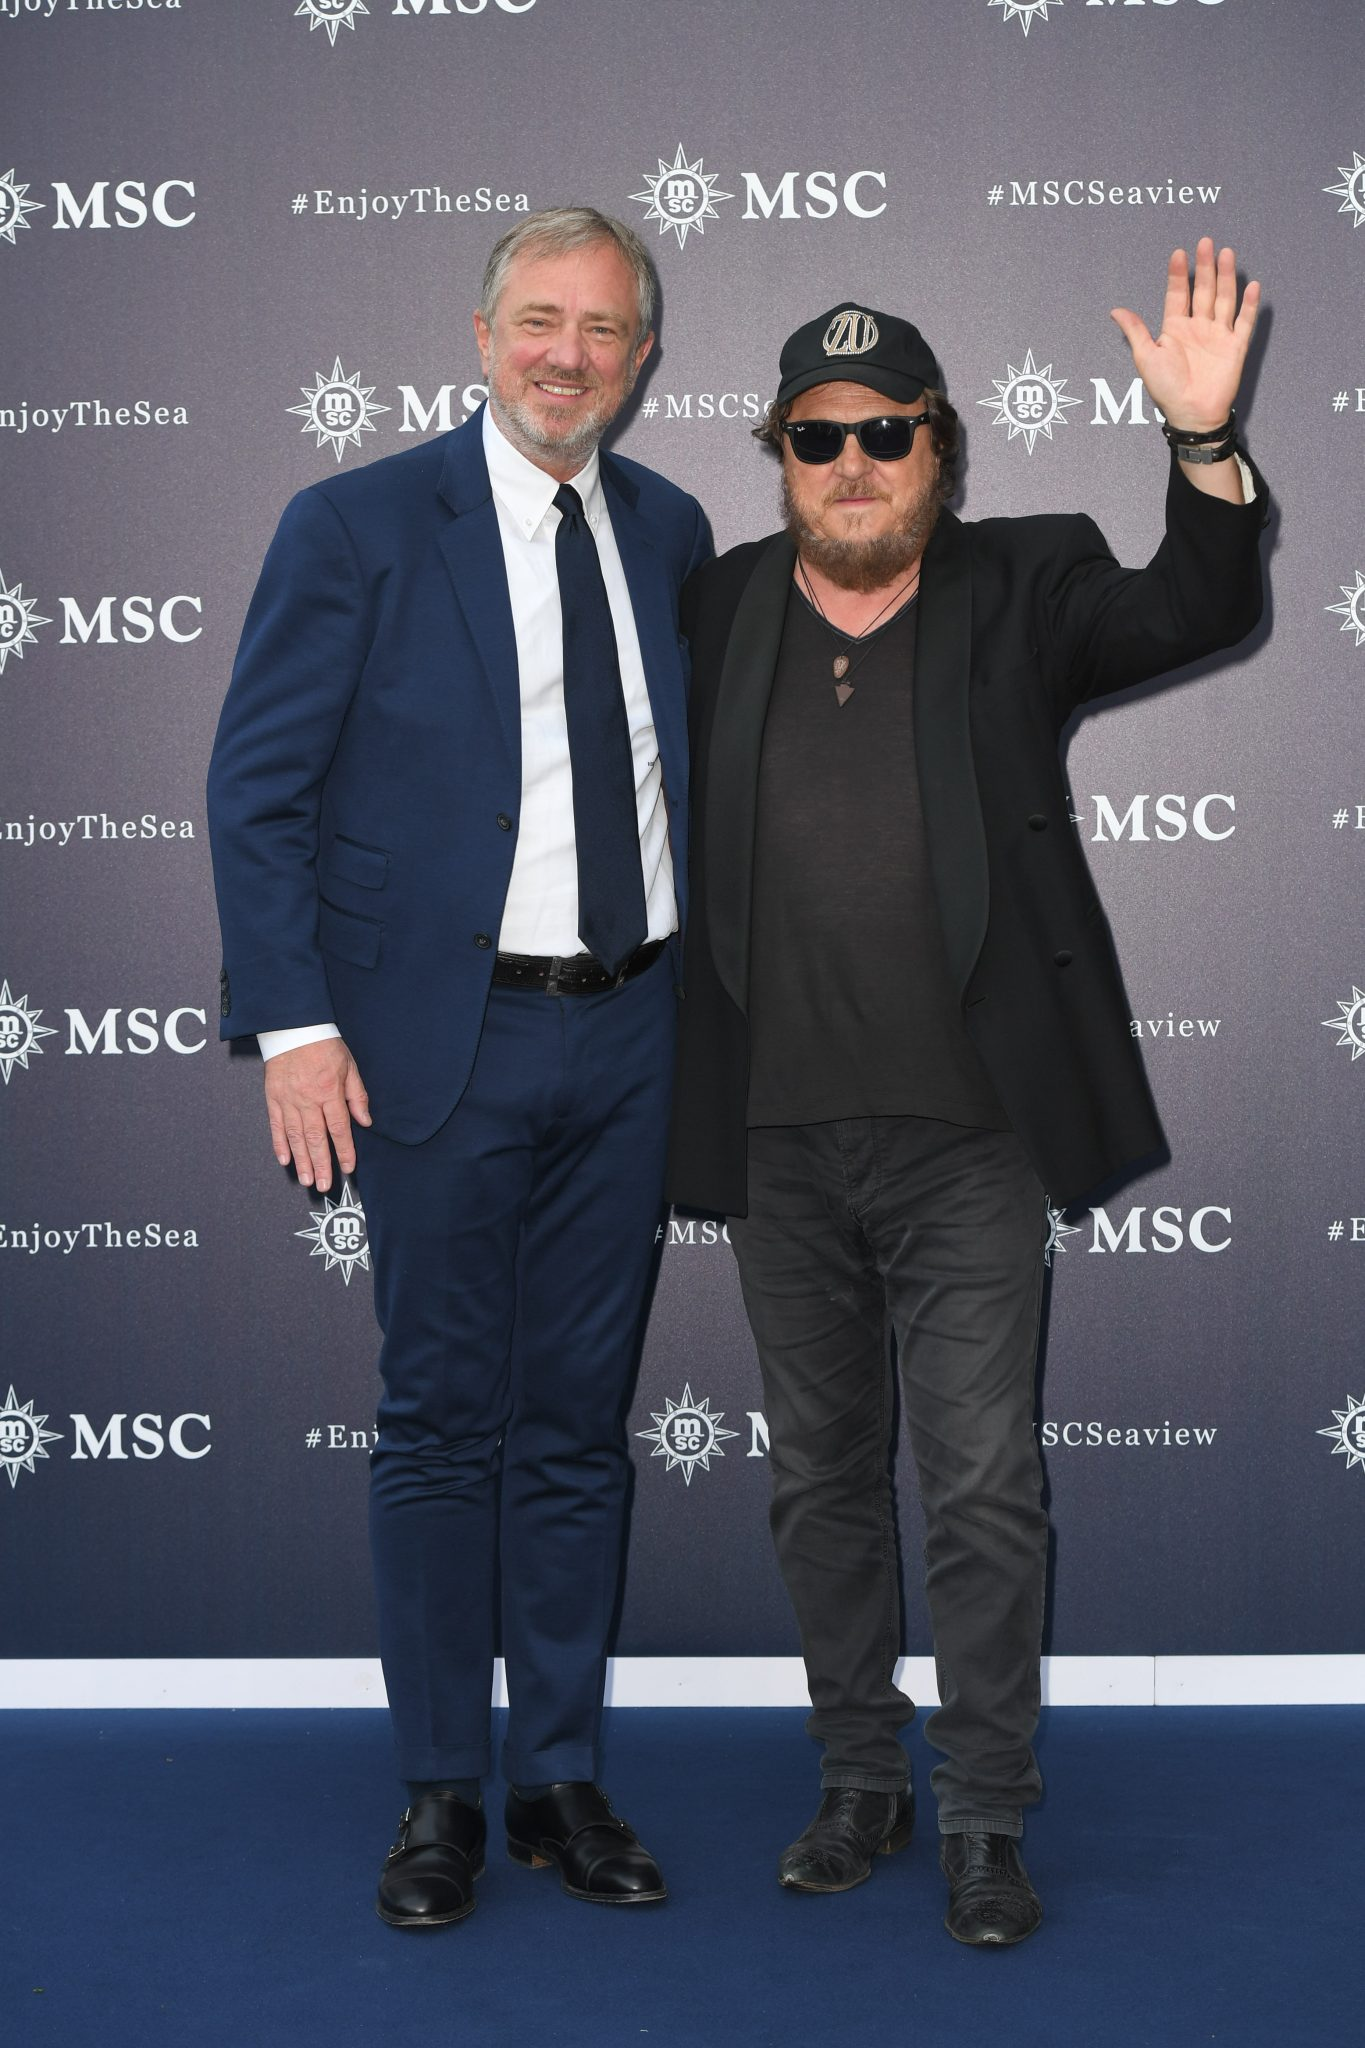 MSC Cruises Executive Chairman, Pierfrancesco Vago and Zucchero